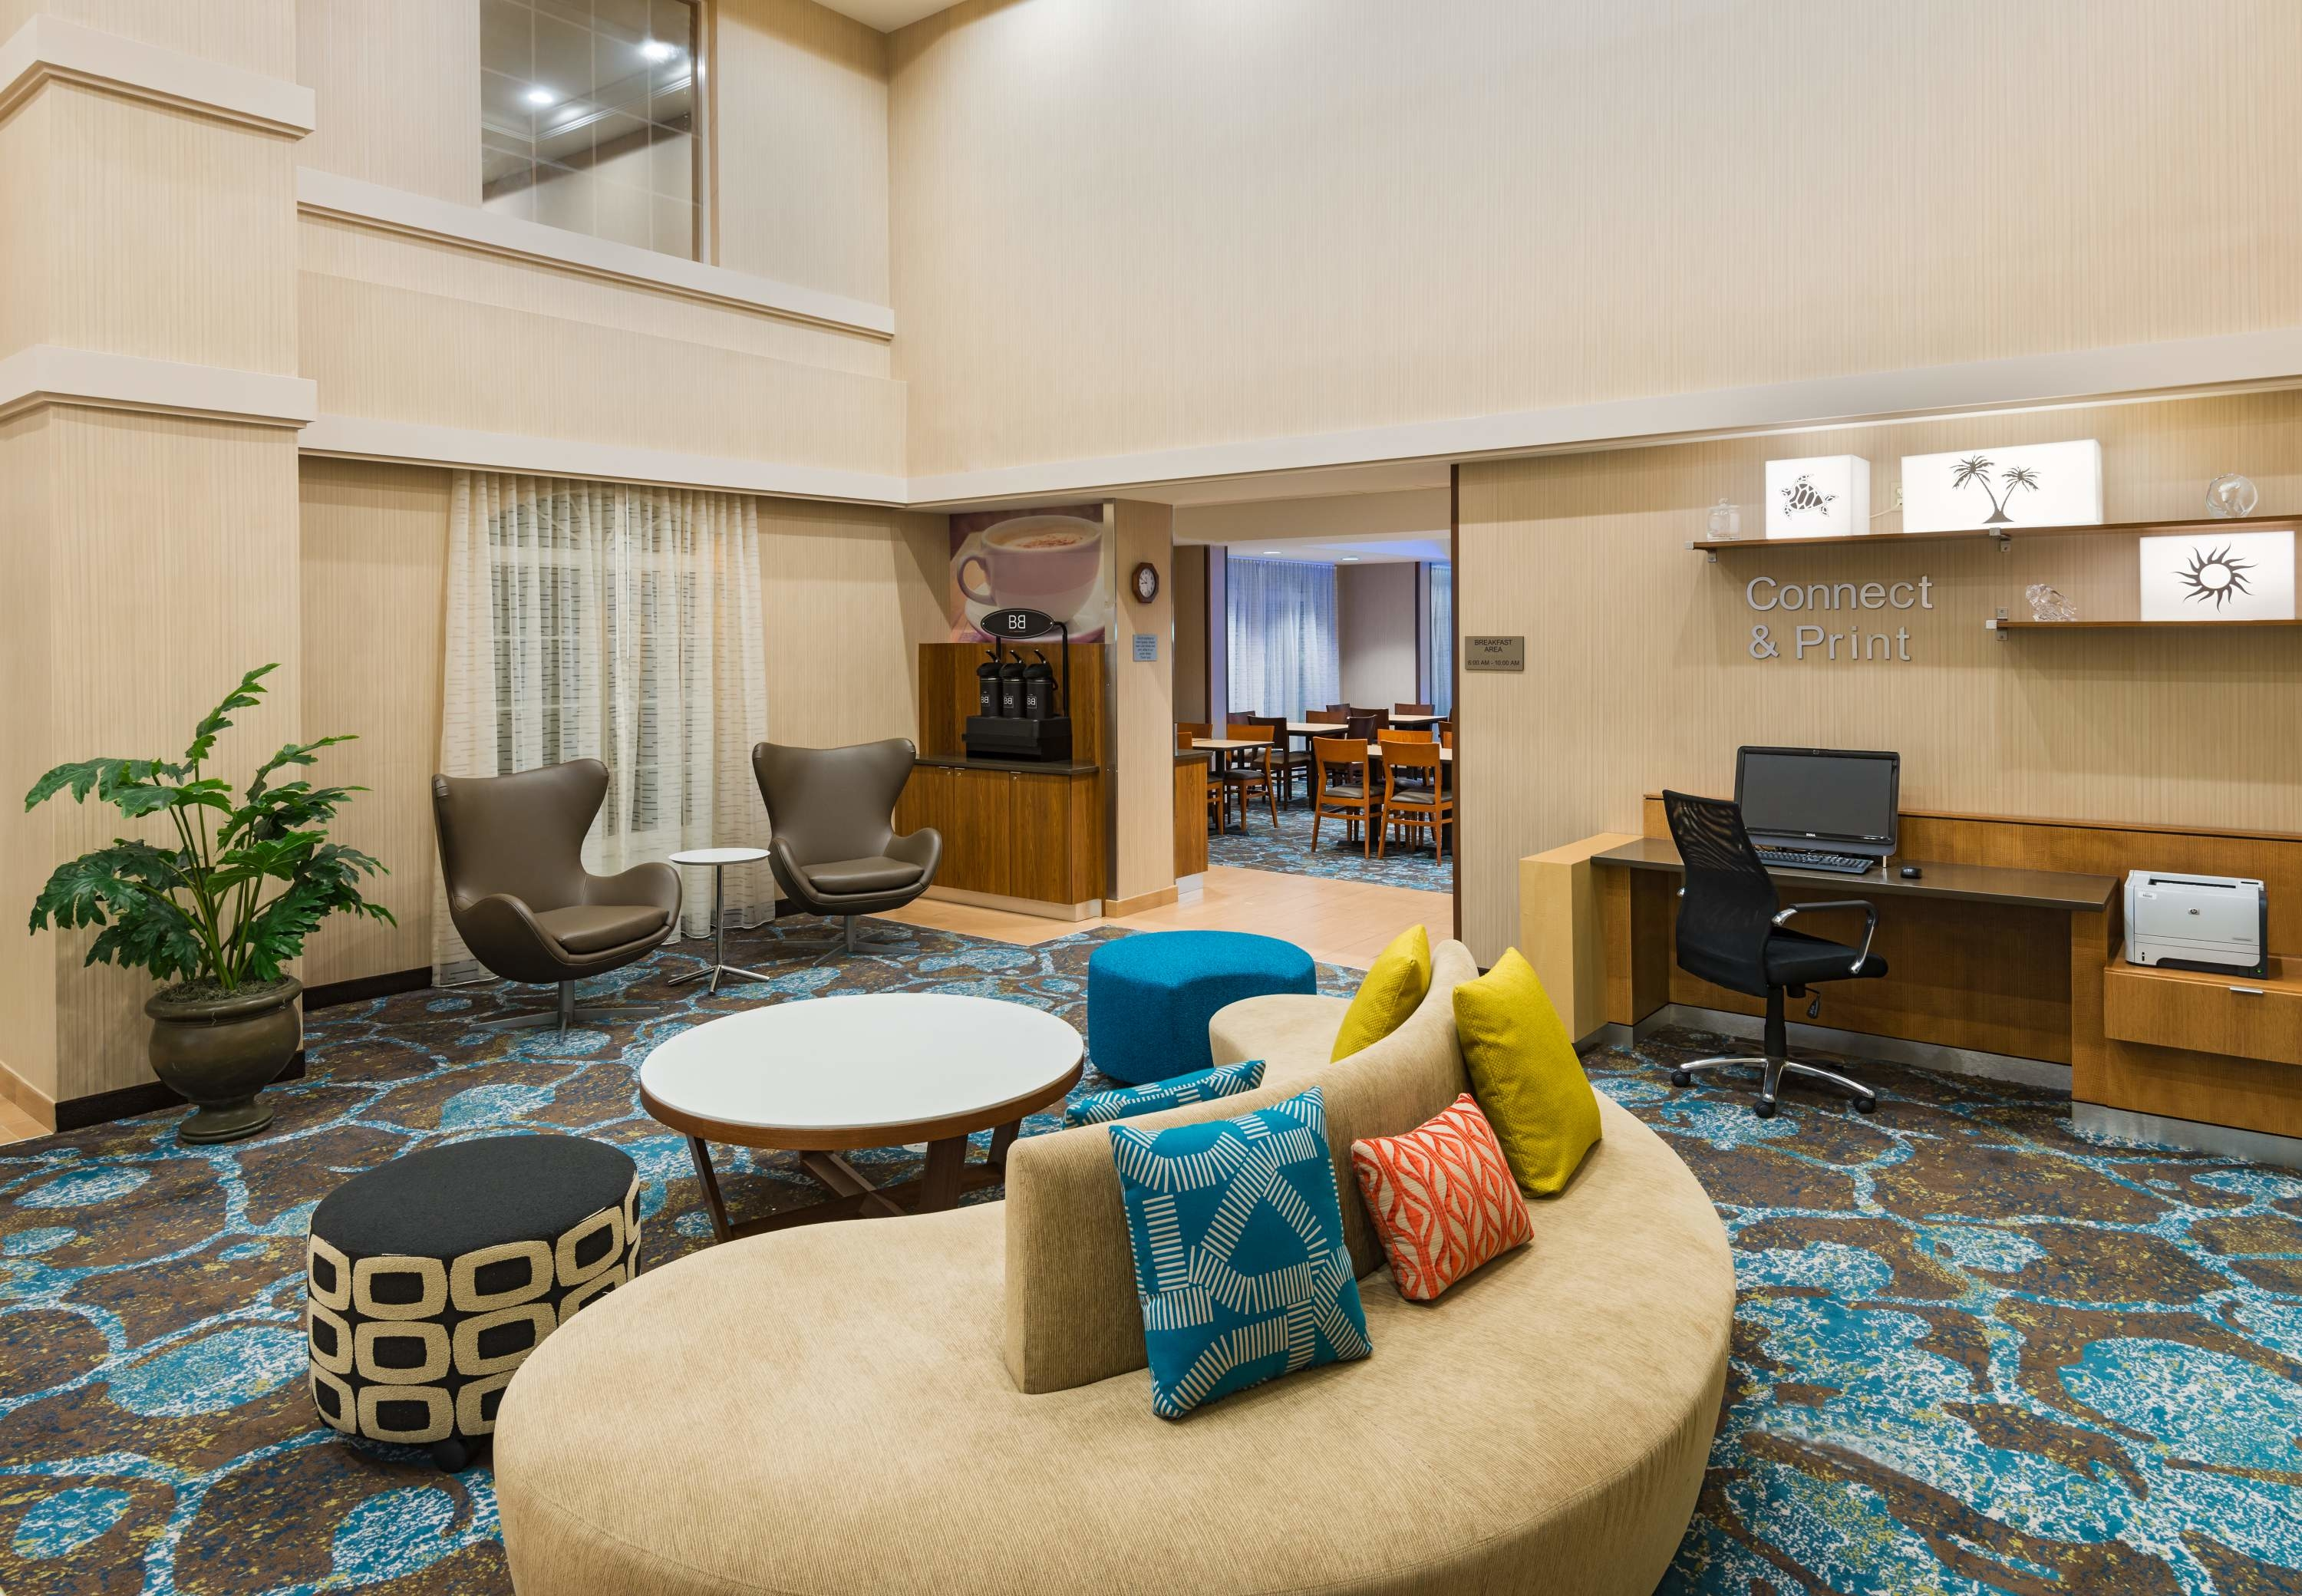 Fairfield Inn & Suites by Marriott Clearwater image 1